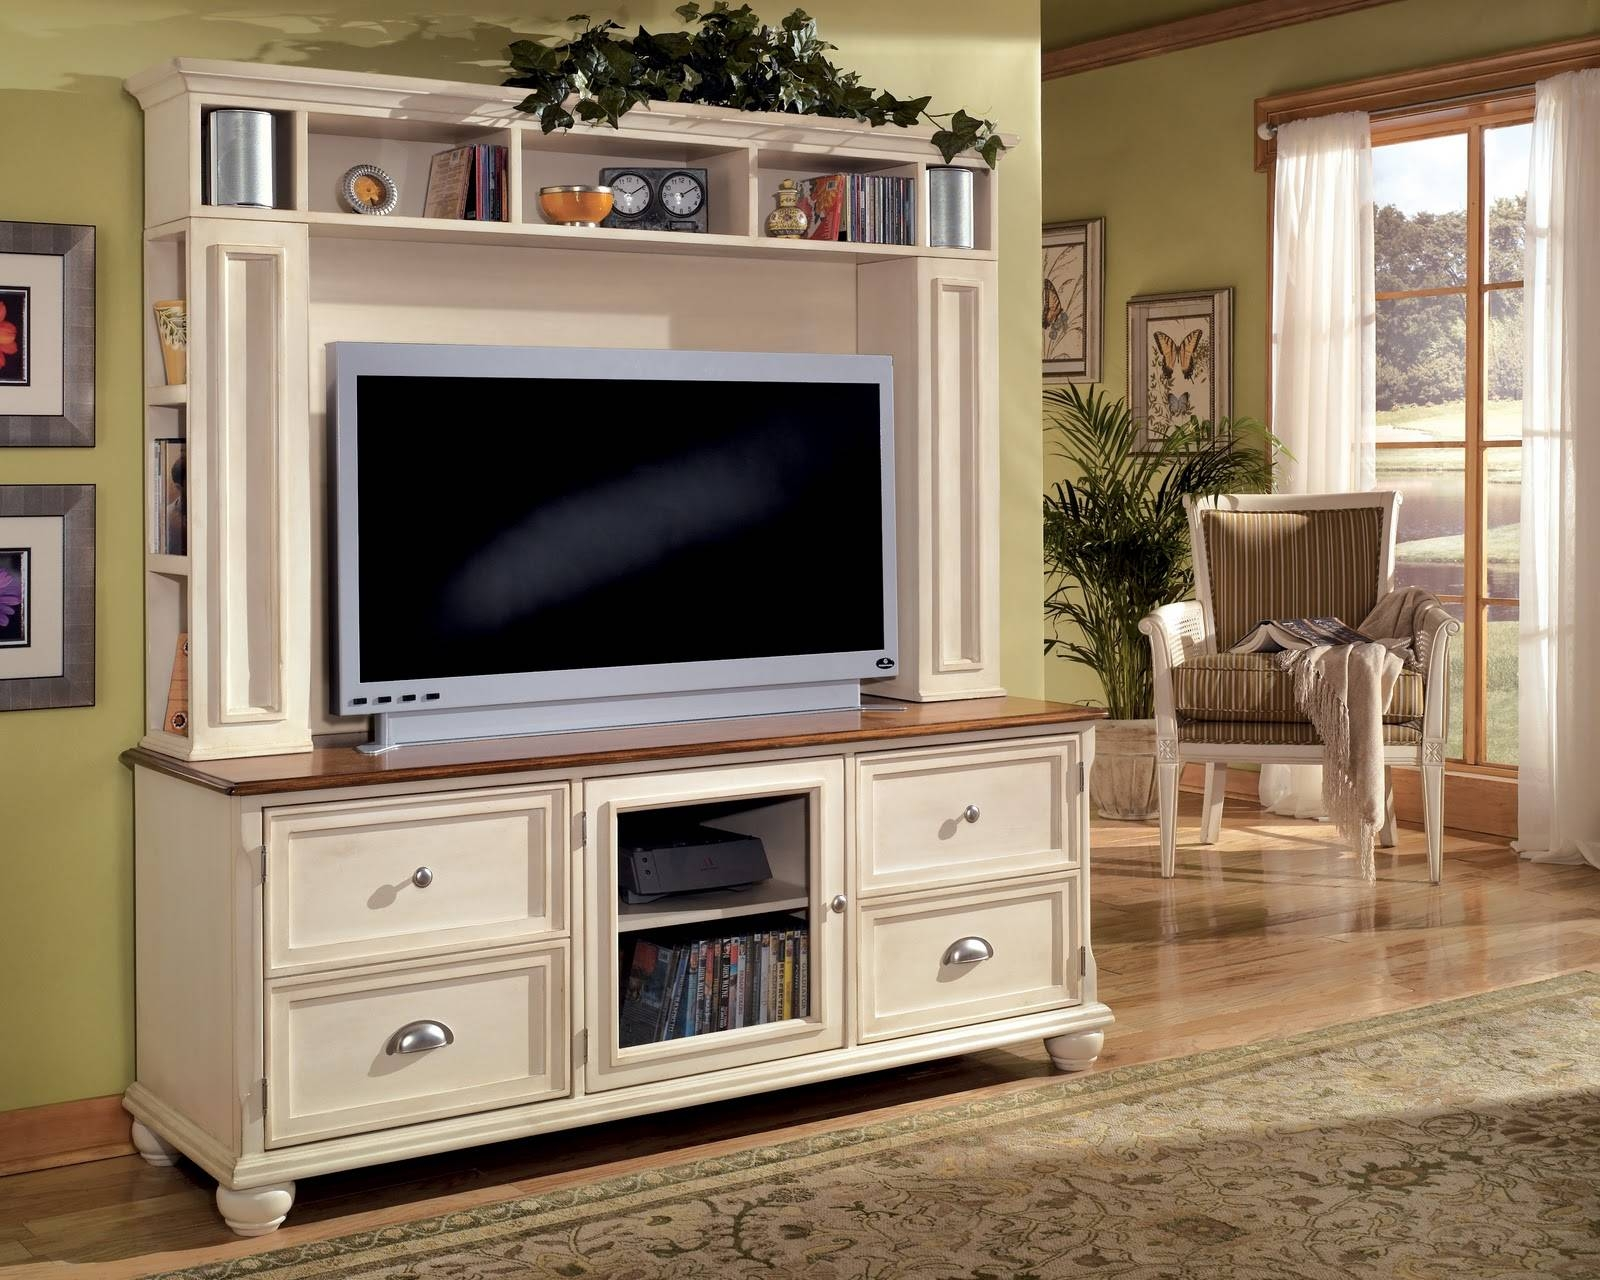 Furniture. The Best Collection Of Big Screen Tv Stands For Home with Large White Tv Stands (Image 7 of 15)